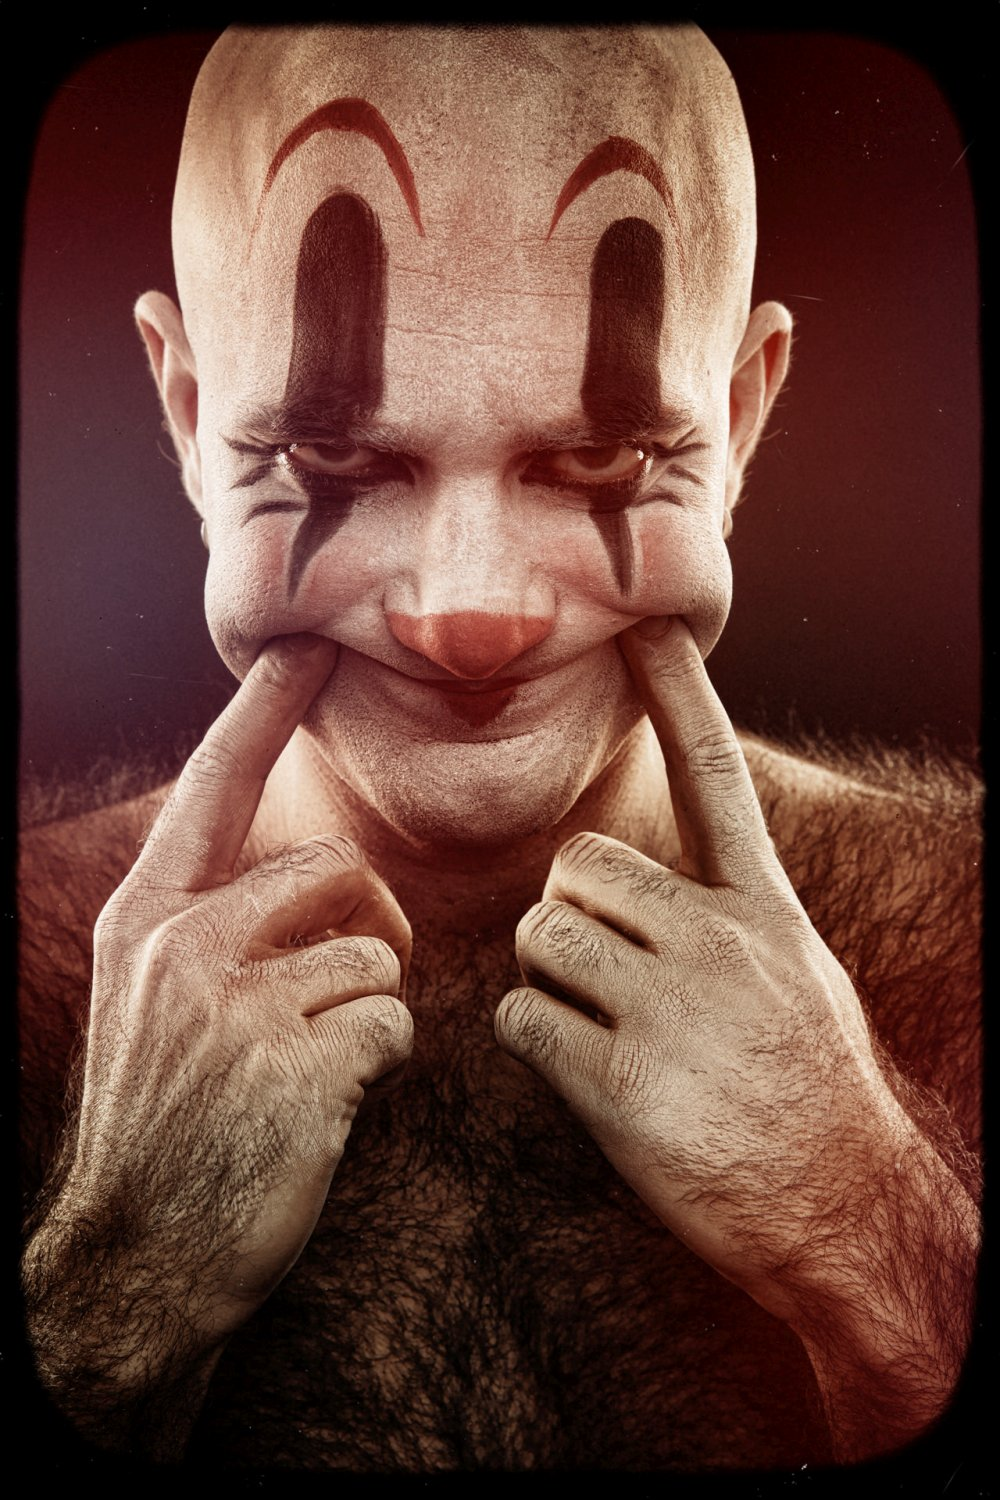 Eolo Perfido-Clownville-Photography__smile